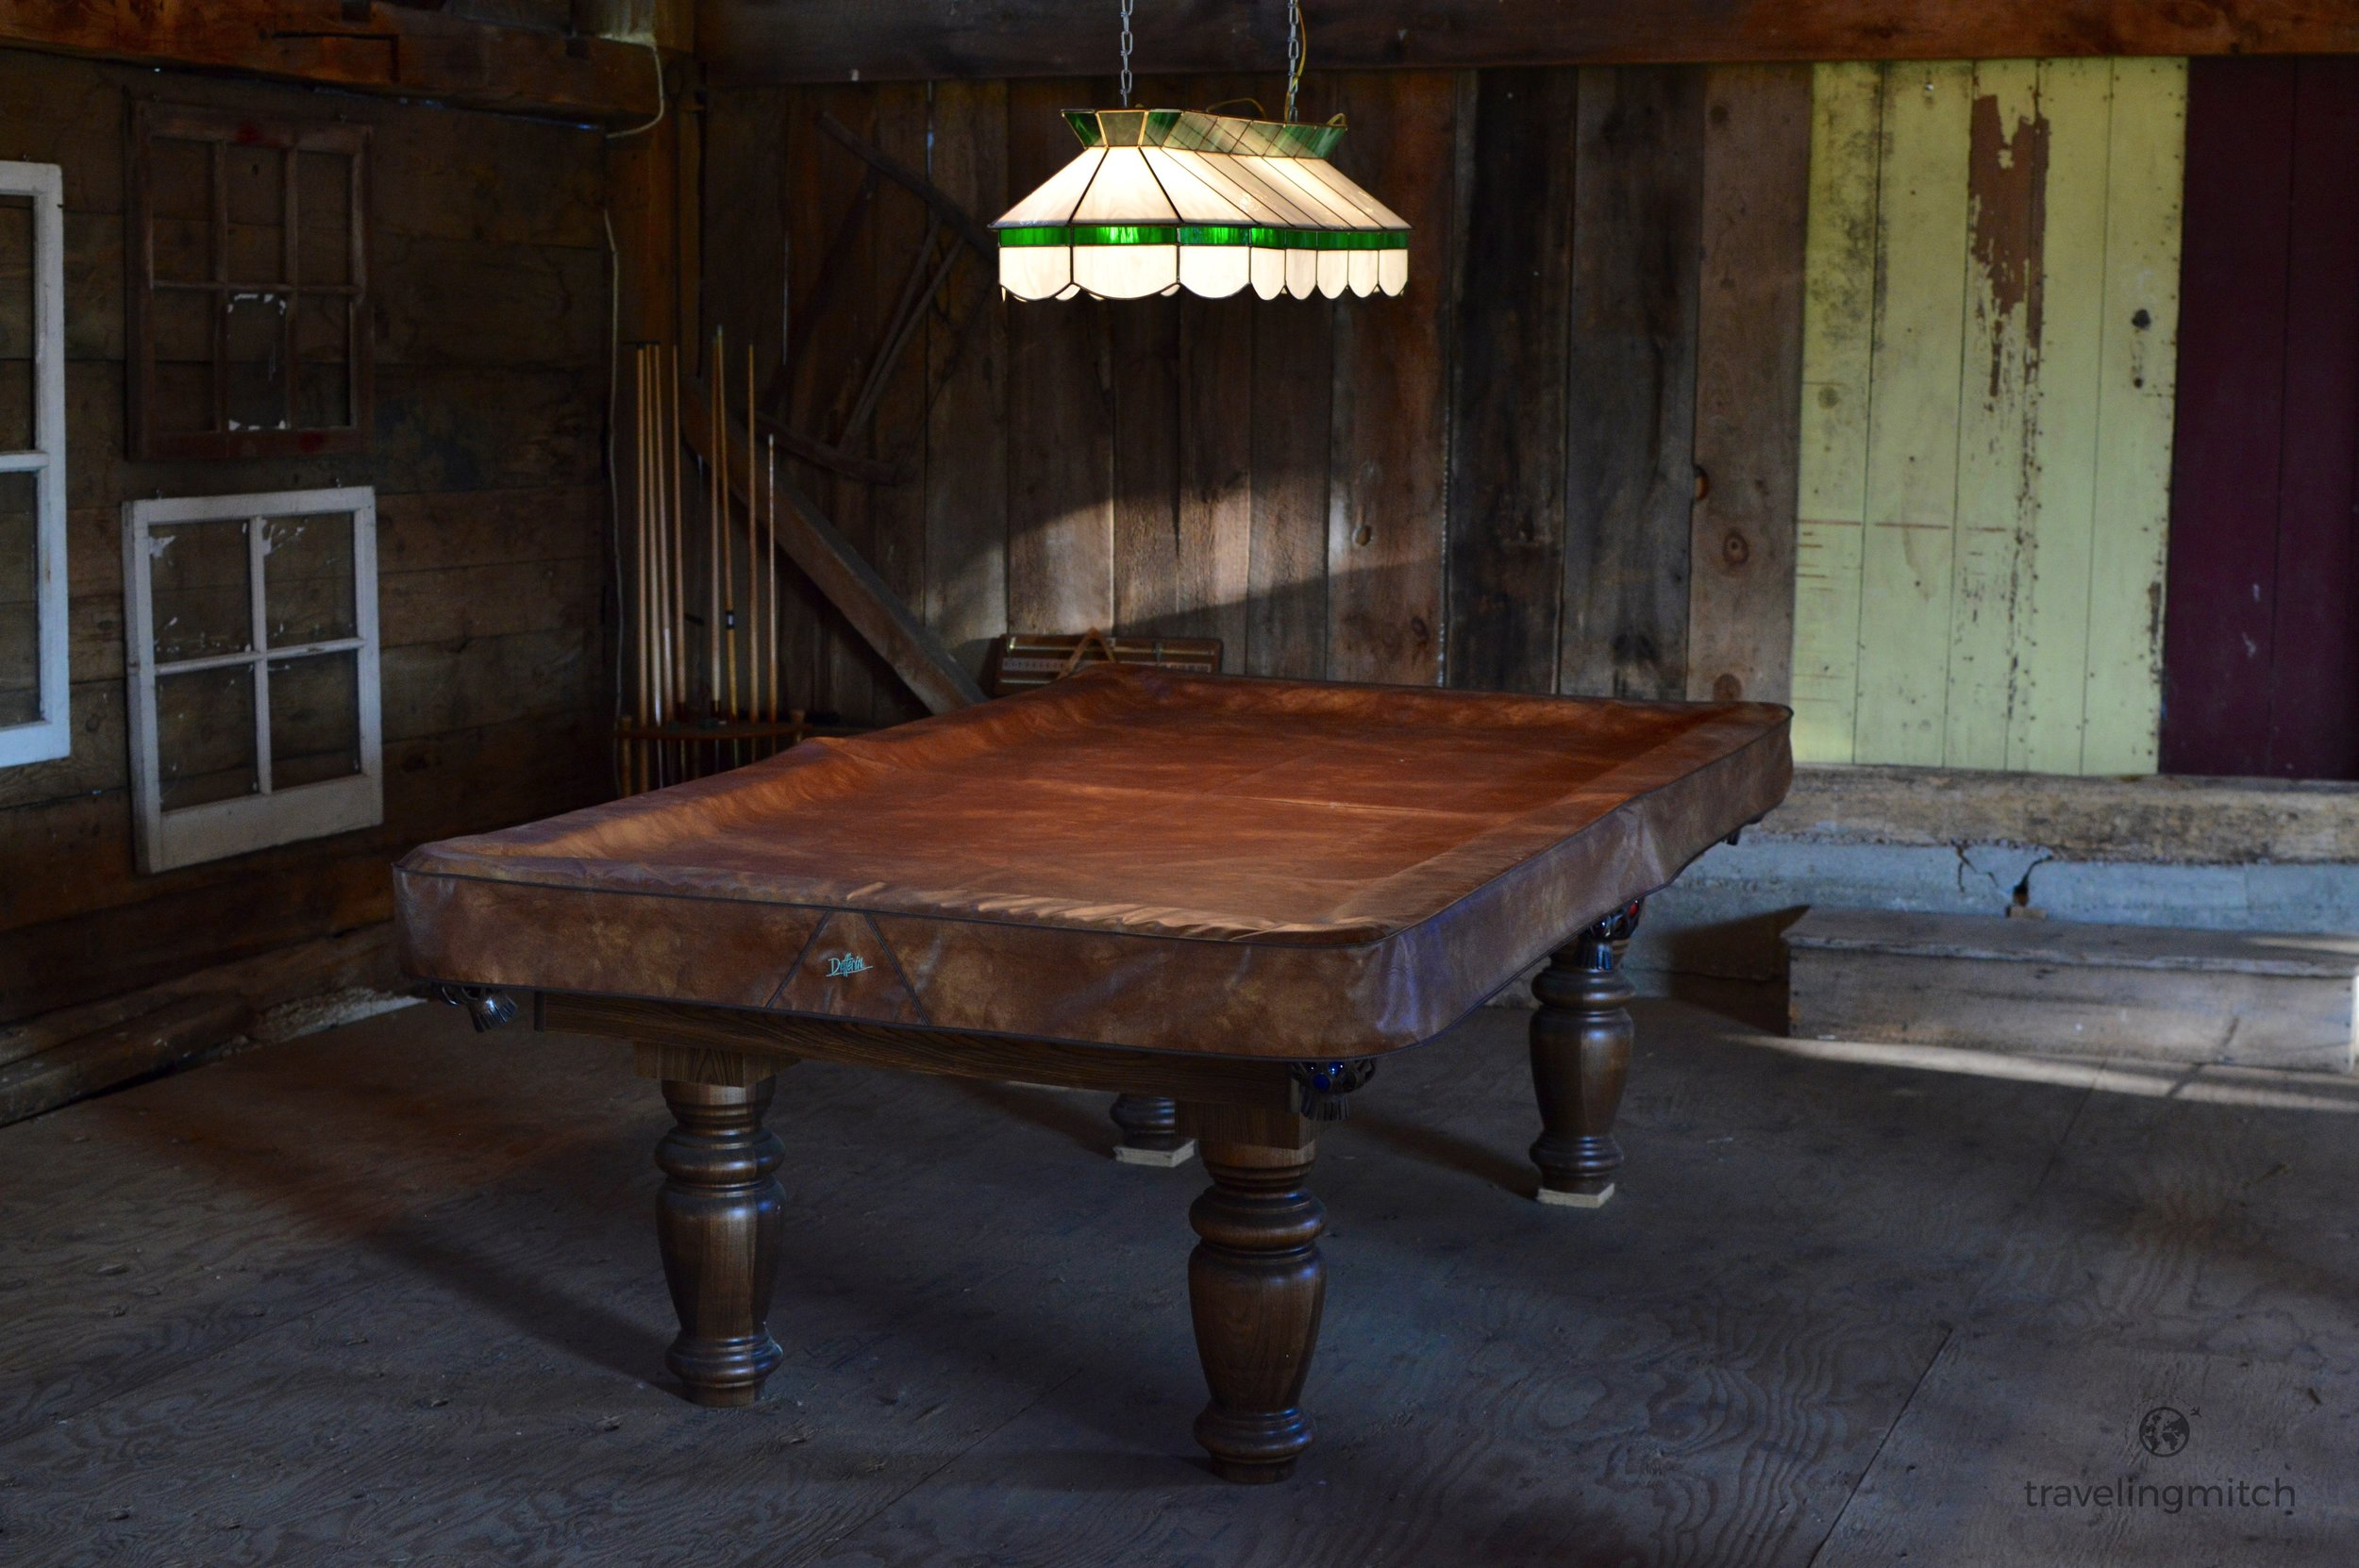 The pool table in the barn at Hayfield Farm near Orono, Ontario